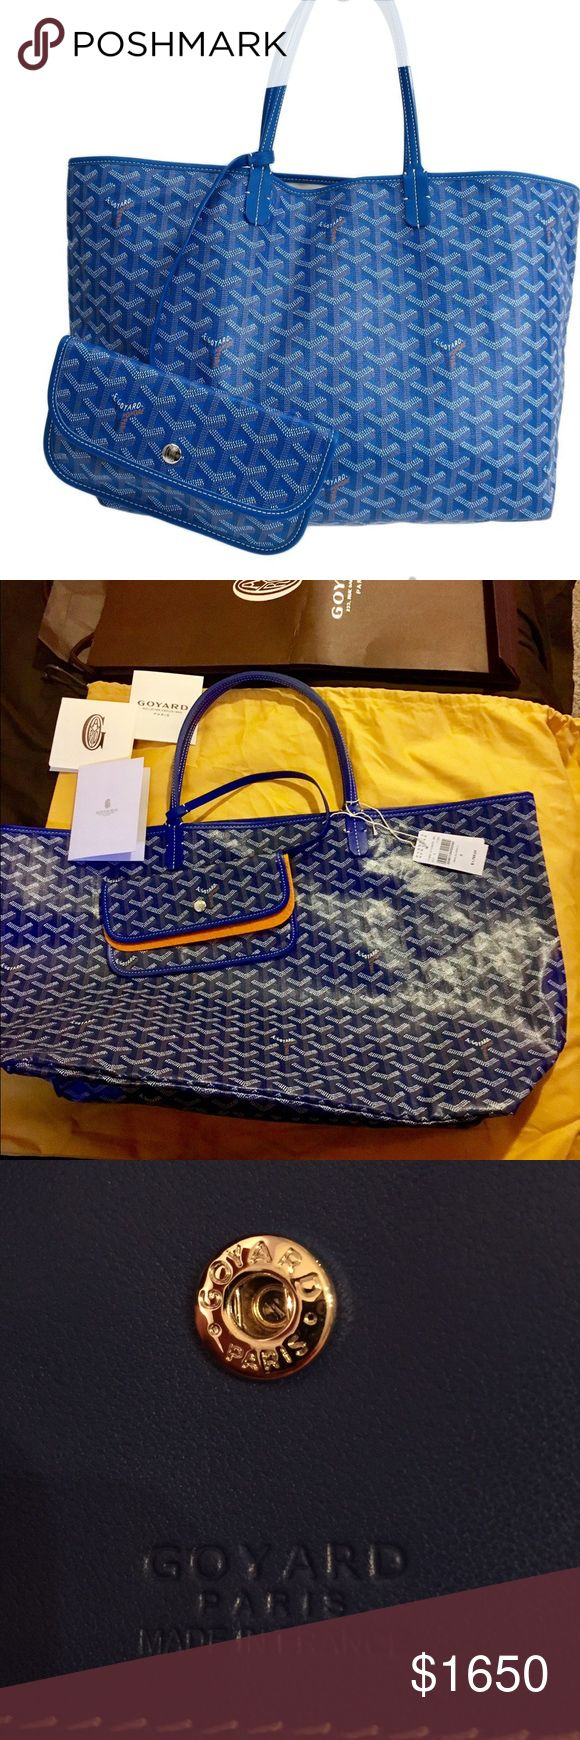 Goyard Saint Louis GM Tote Bag New with tags from Barneys. Everything in second photo included. Goyard Bags Crossbody Bags